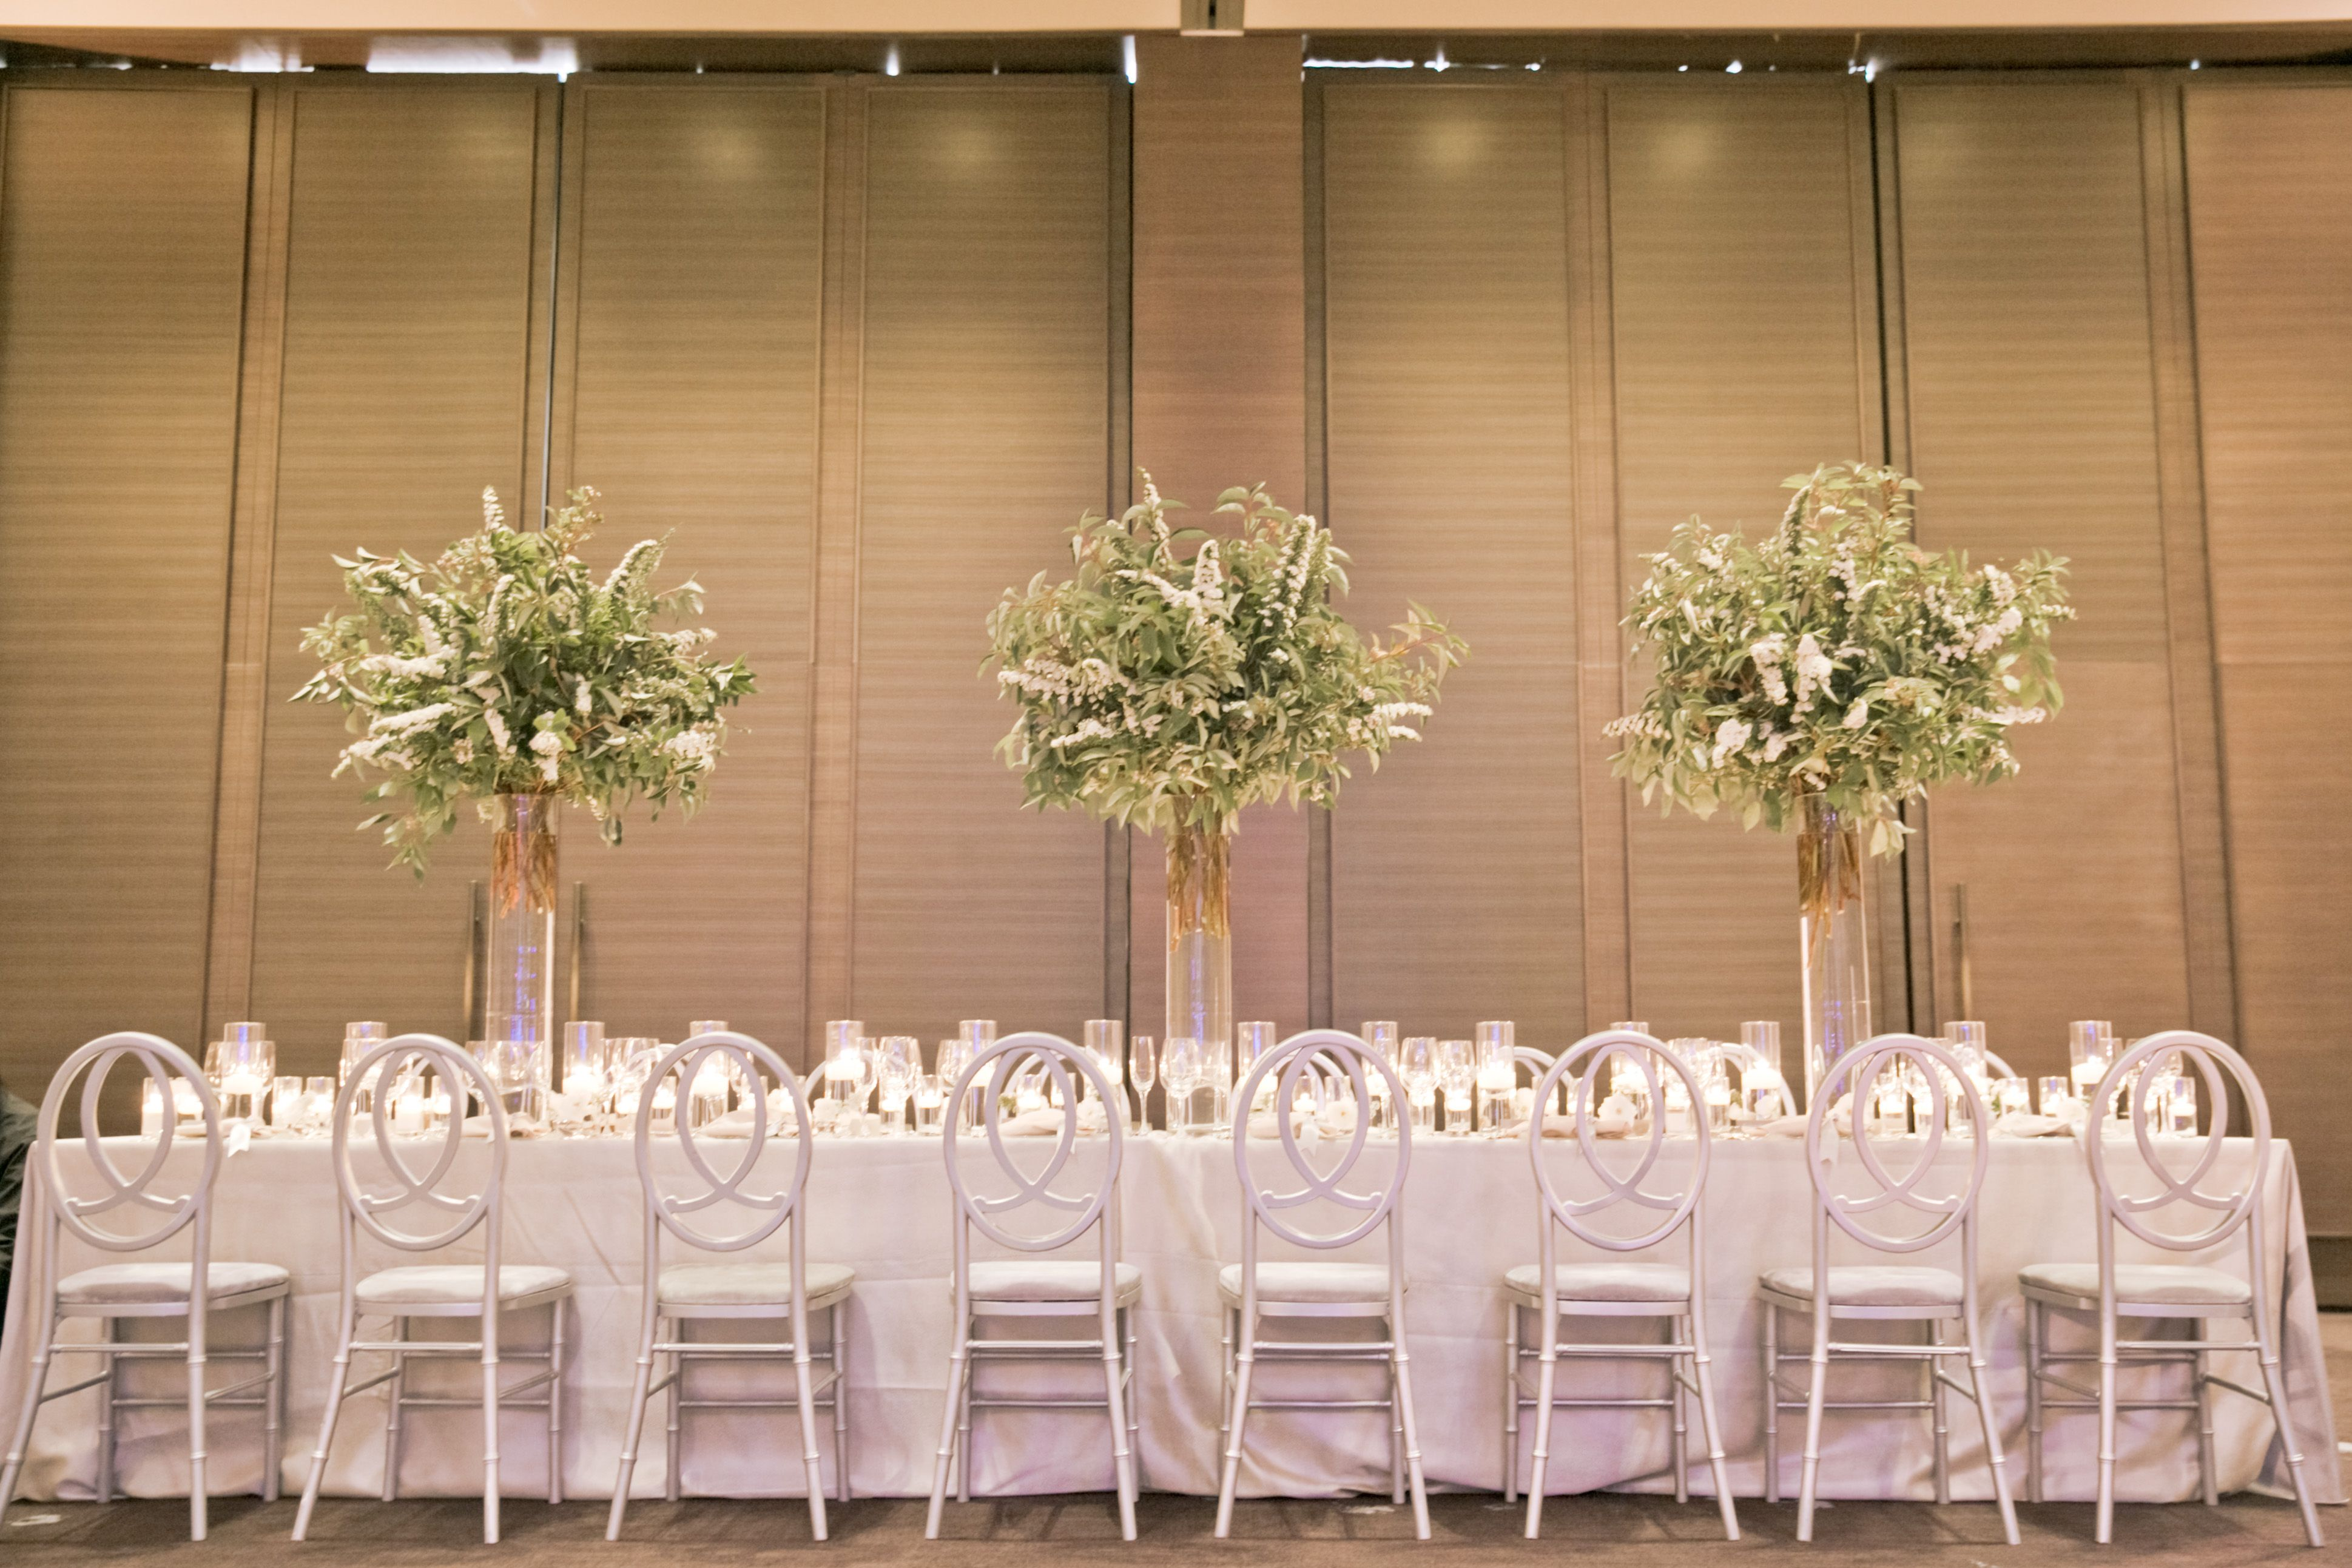 Timeless decor set up for a wedding at The St. Regis San Francisco